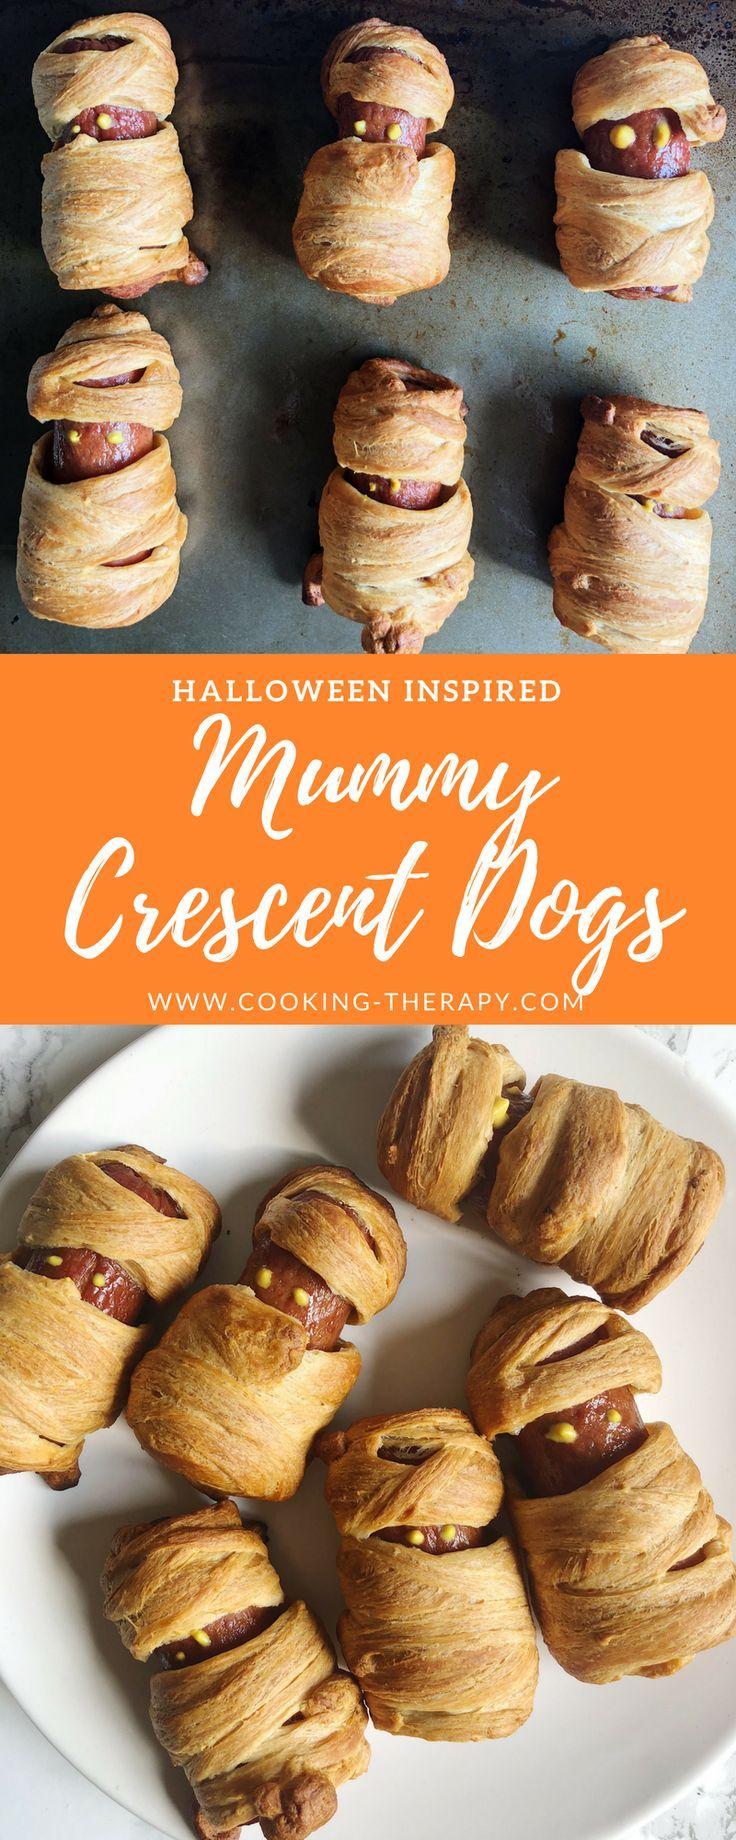 Halloween Inspired Mummy Crescent Dogs - Cooking Therapy #mummyhotdogscrescentrolls